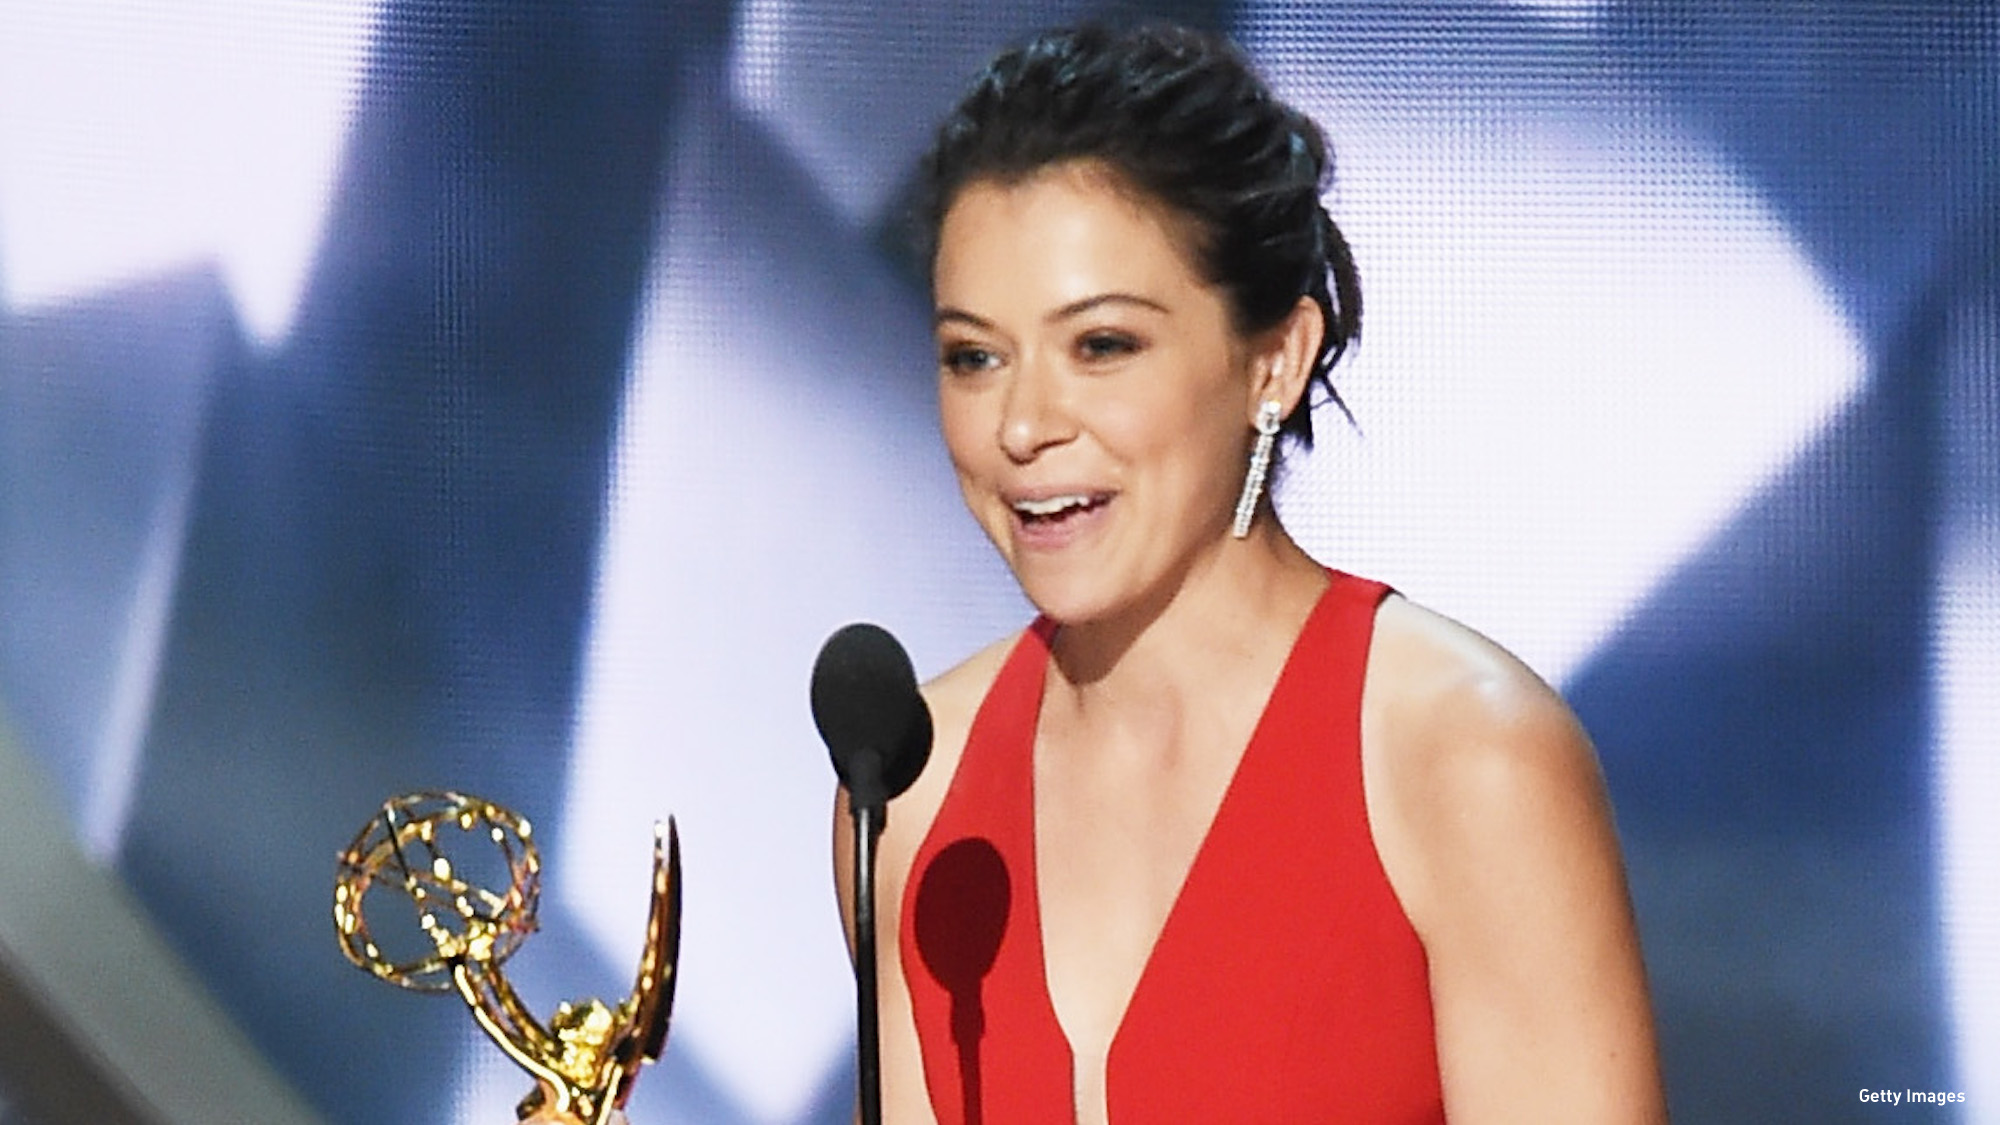 Tatiana Laslany accepts the award for Outstanding Lead Actress in a Drama Series. (Photo: Getty Images)